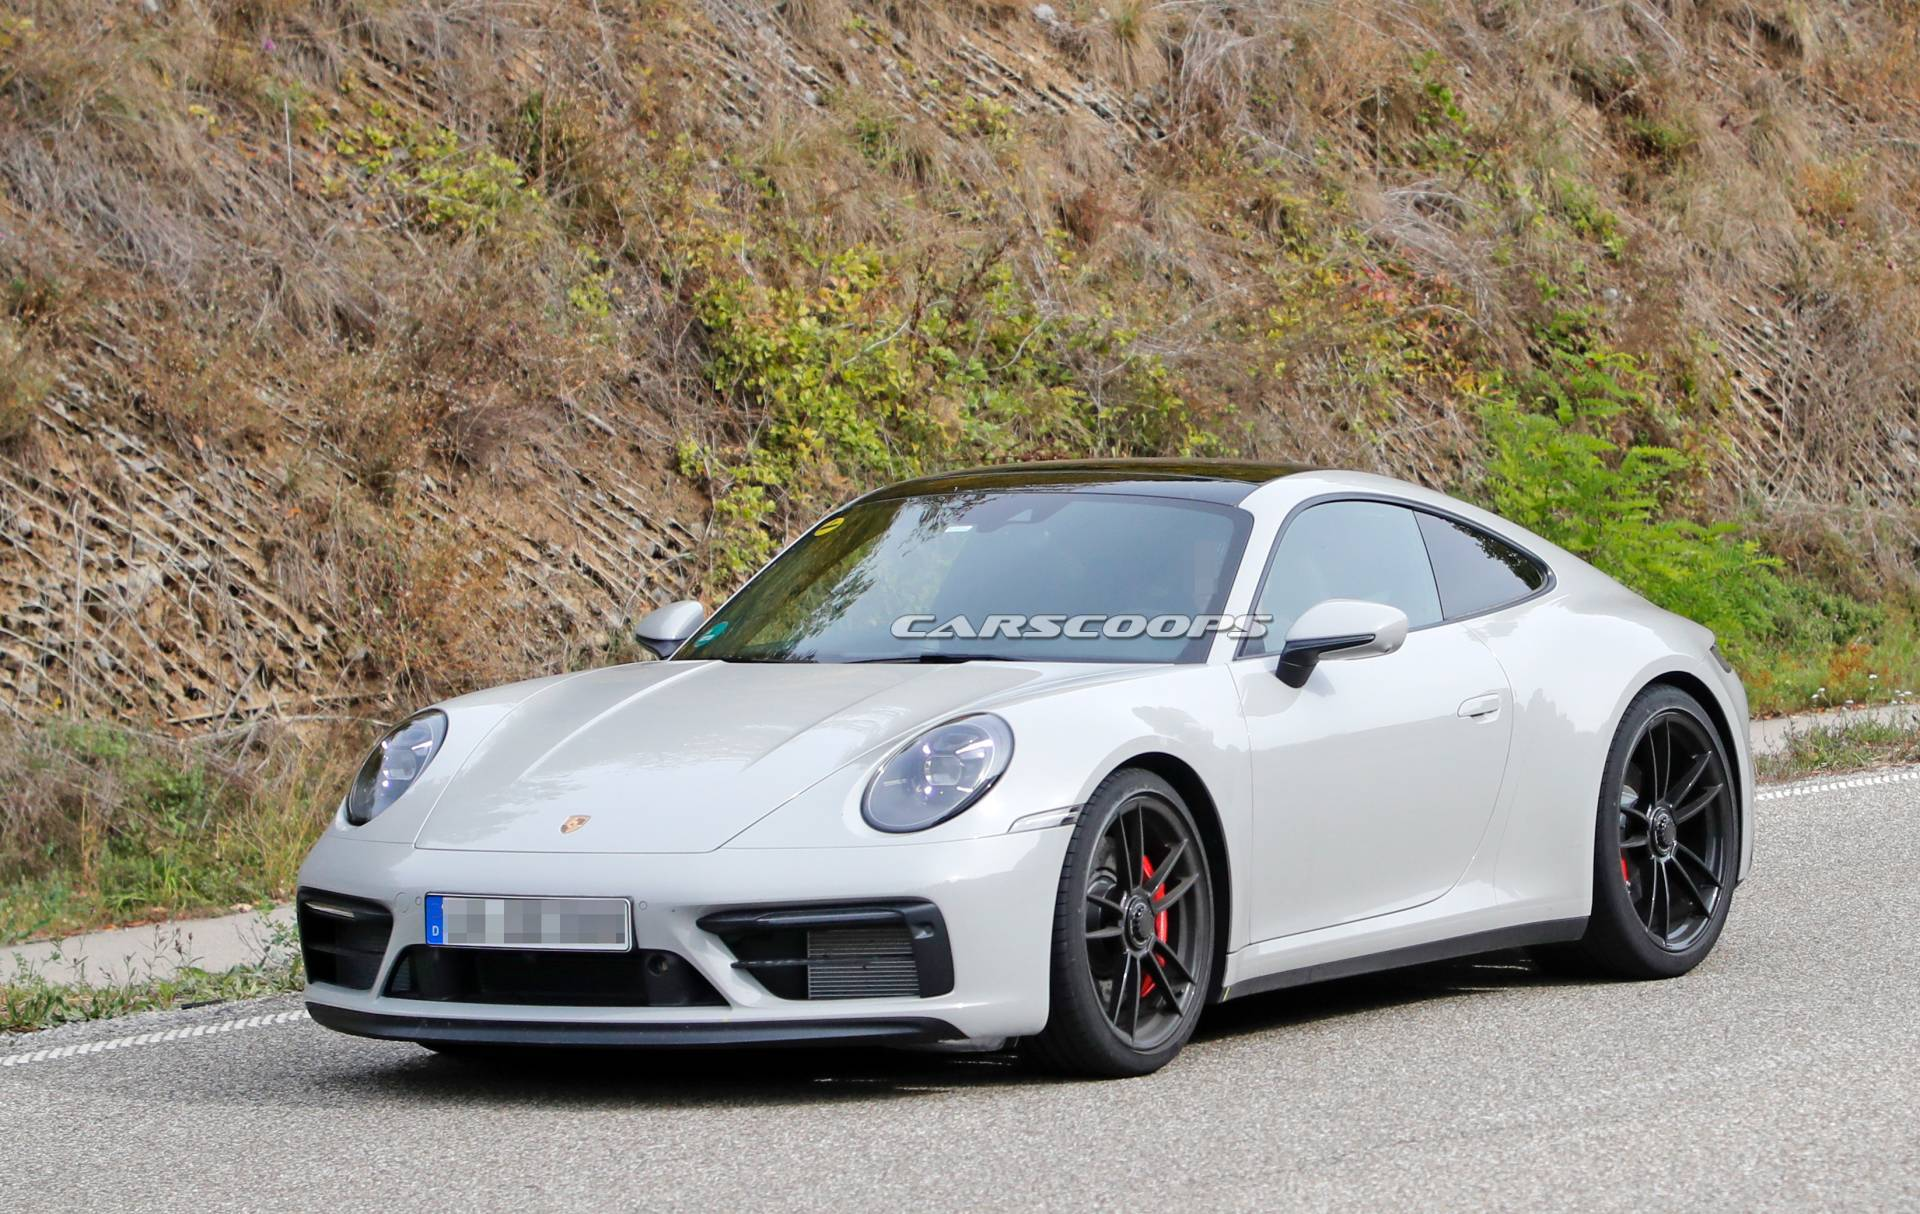 2020 Porsche 911 GTS Spotted Without Camo